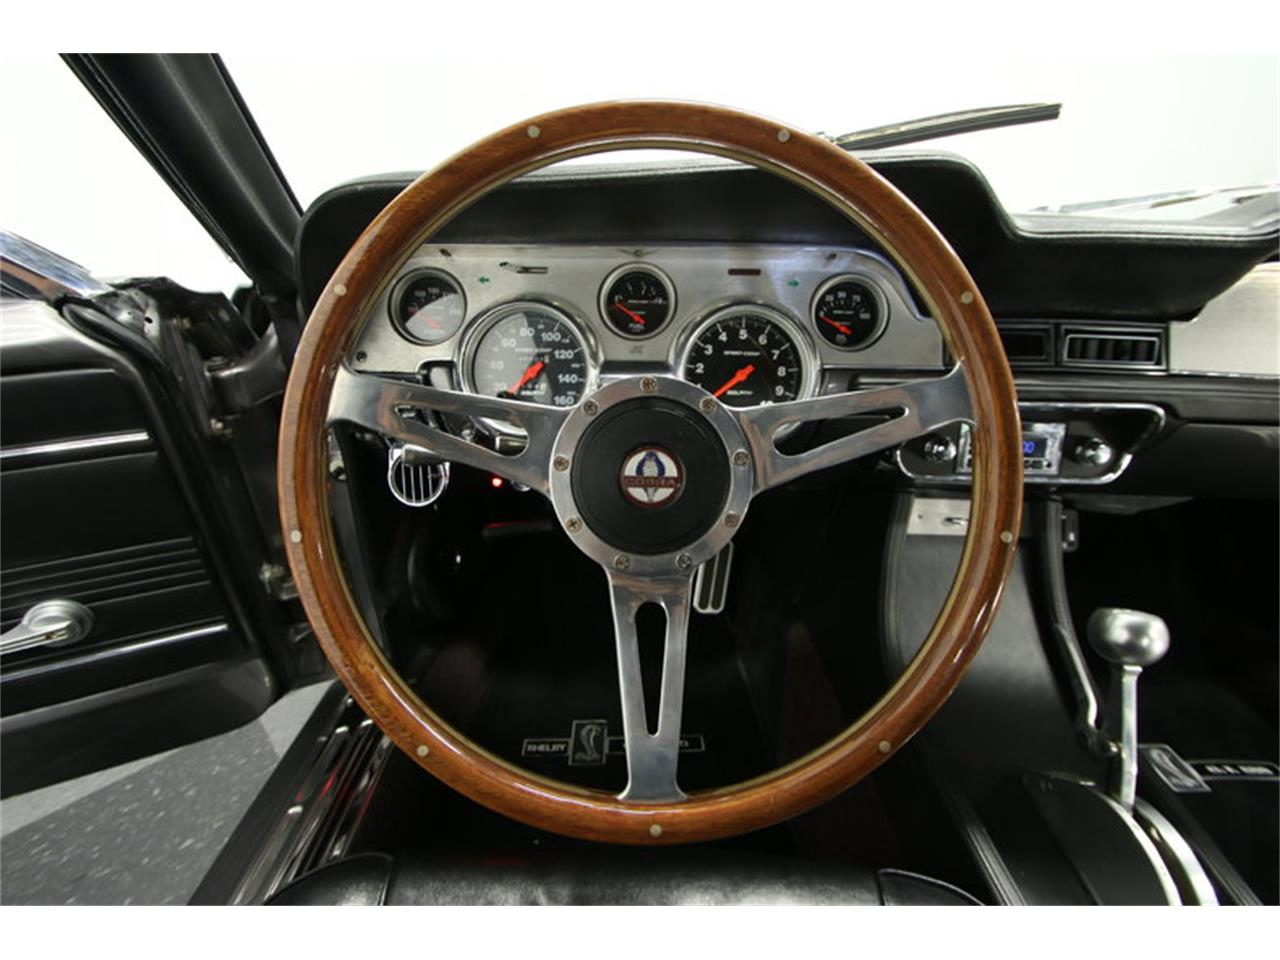 Large Picture of Classic 1967 Ford Mustang located in Lutz Florida - $84,995.00 Offered by Streetside Classics - Tampa - HDGJ